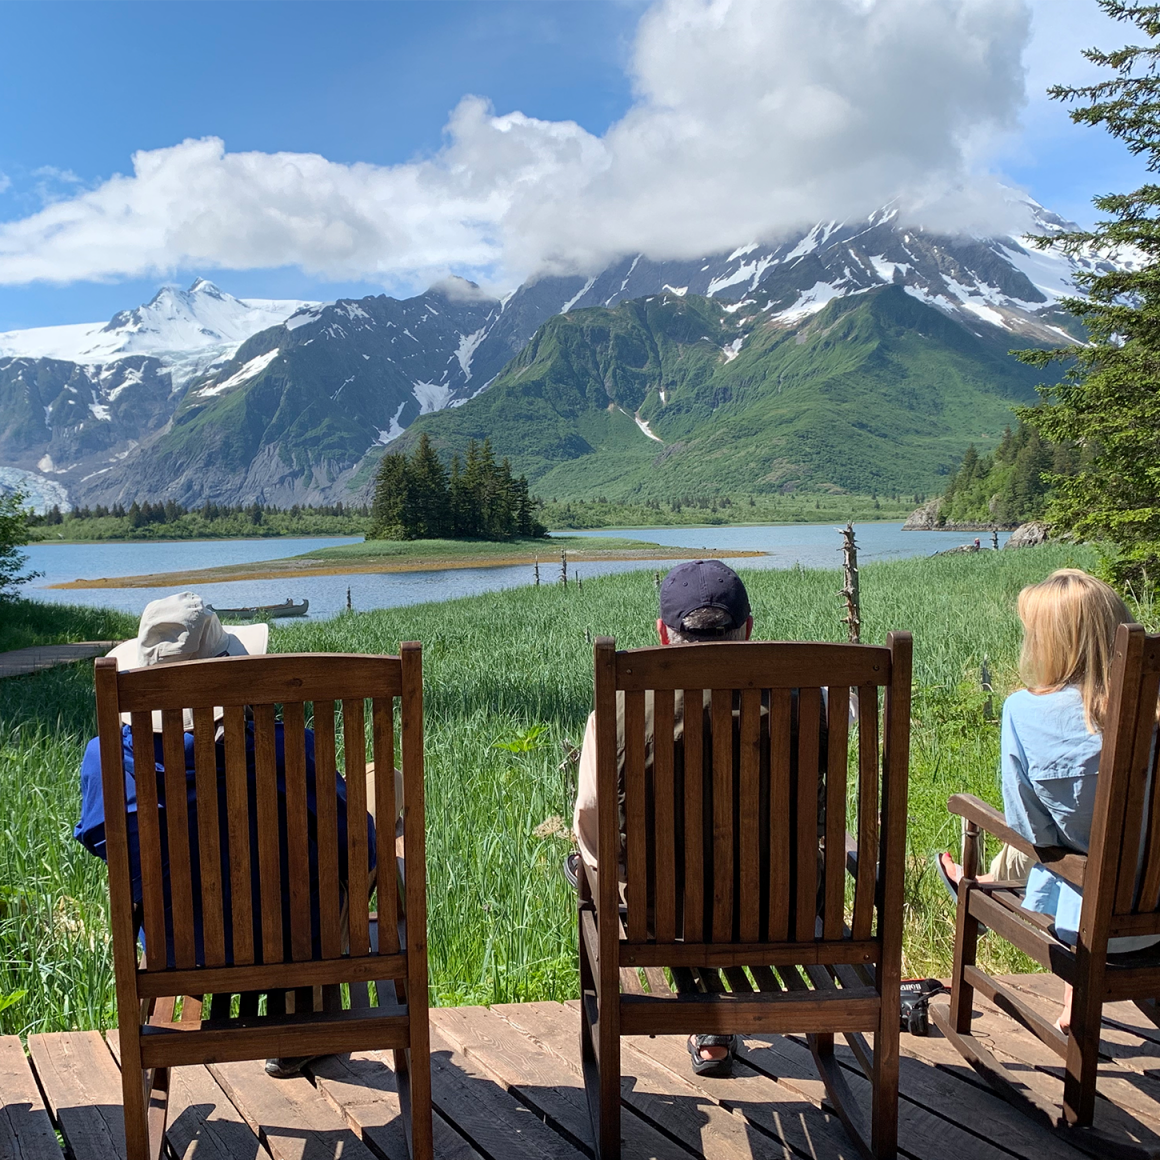 Back-view of travelers sitting in chairs enjoying view of Alaskan mountains.